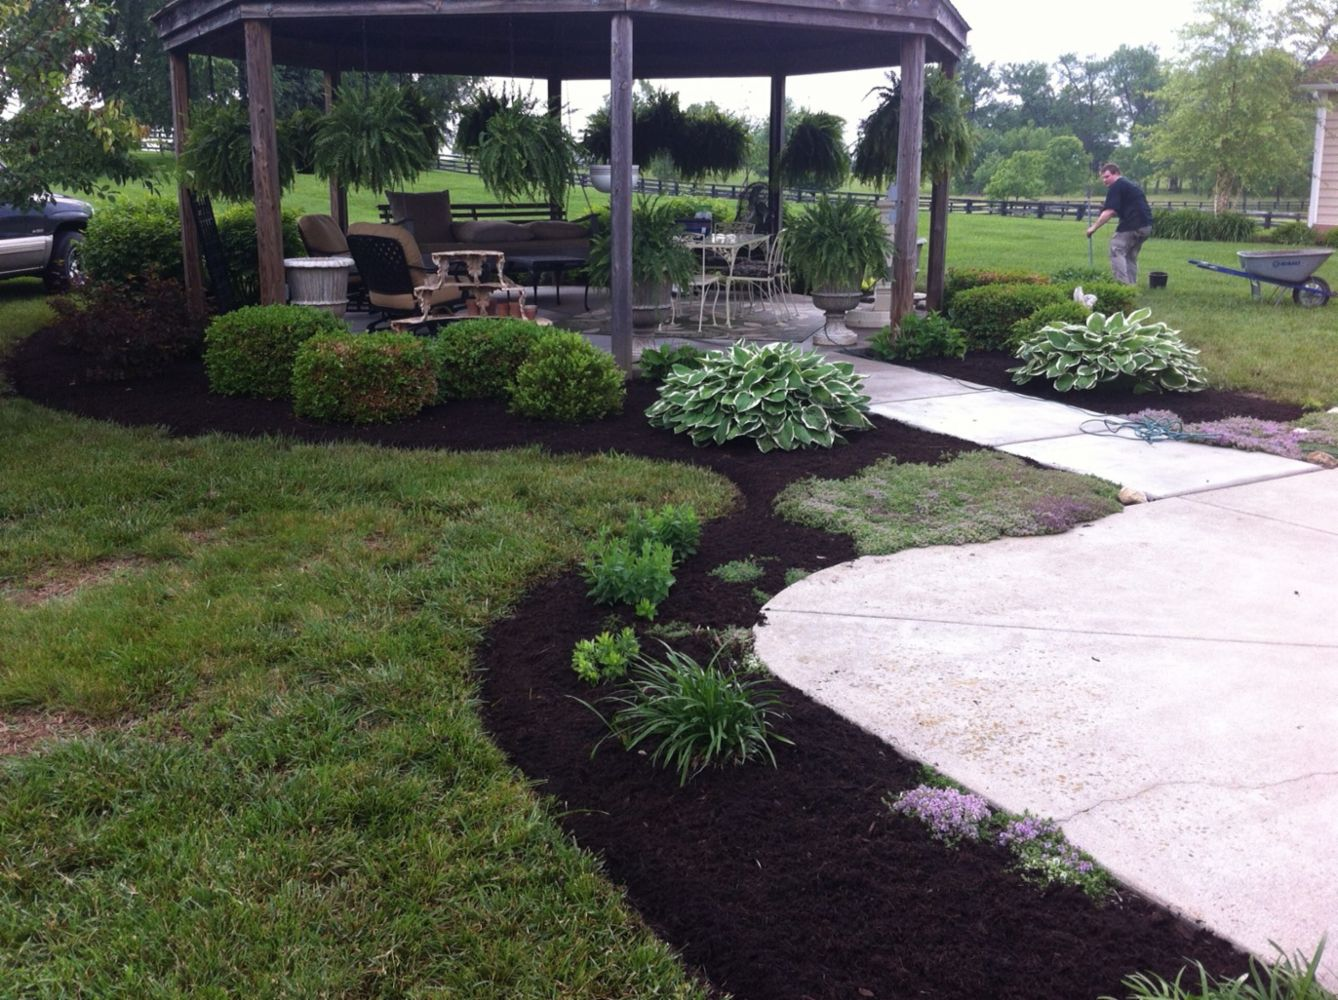 Landscaping ideas designs and services in wilmore ky for Garden design llc